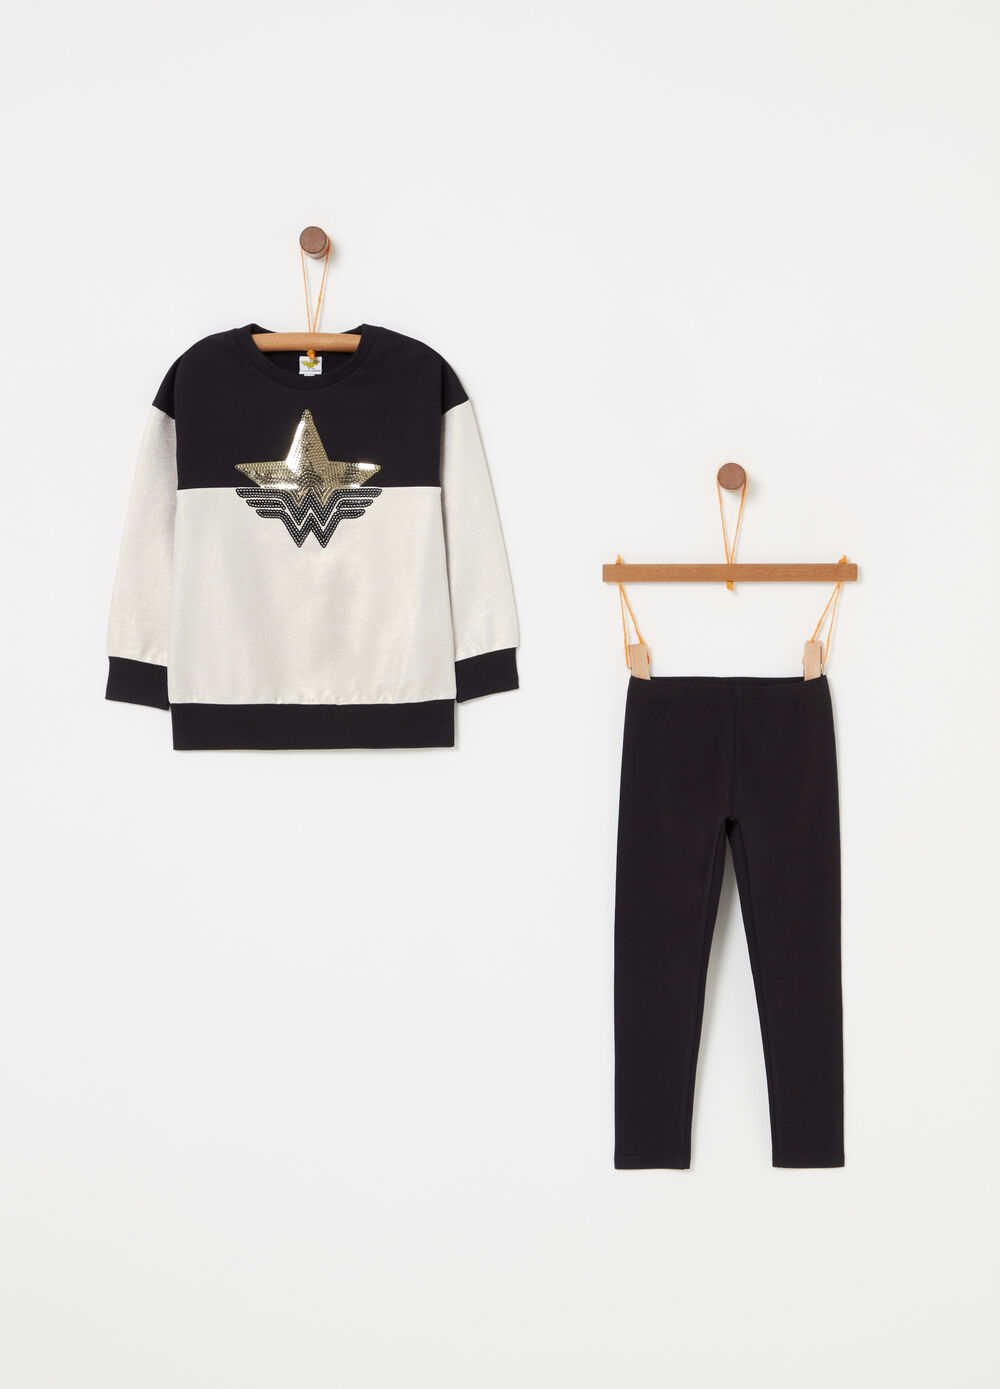 Warner Bros Wonder Woman jogging set